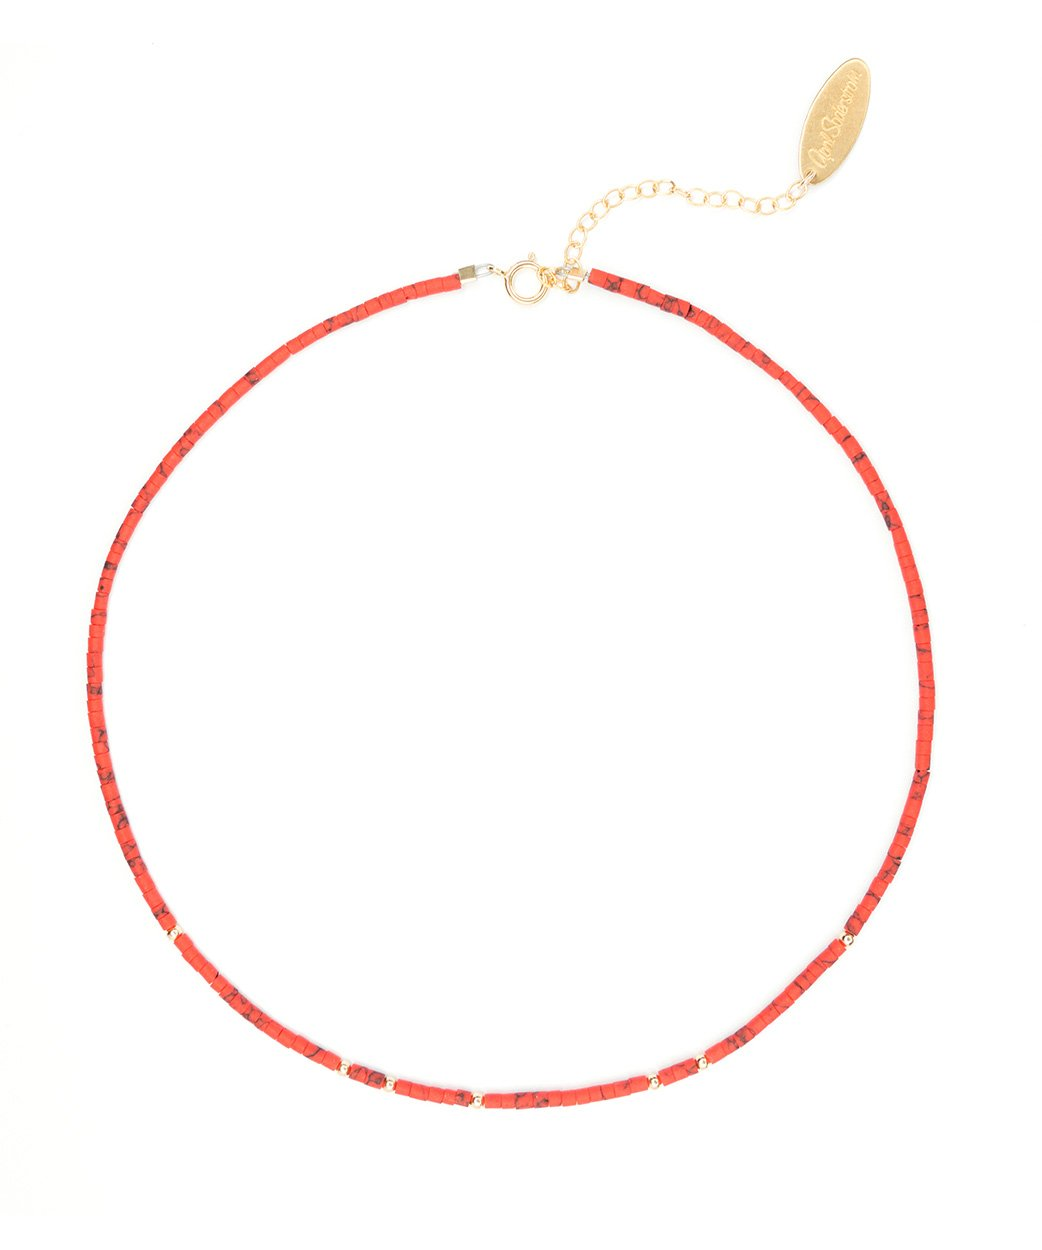 N Halona Choker Necklace Red Coral 1